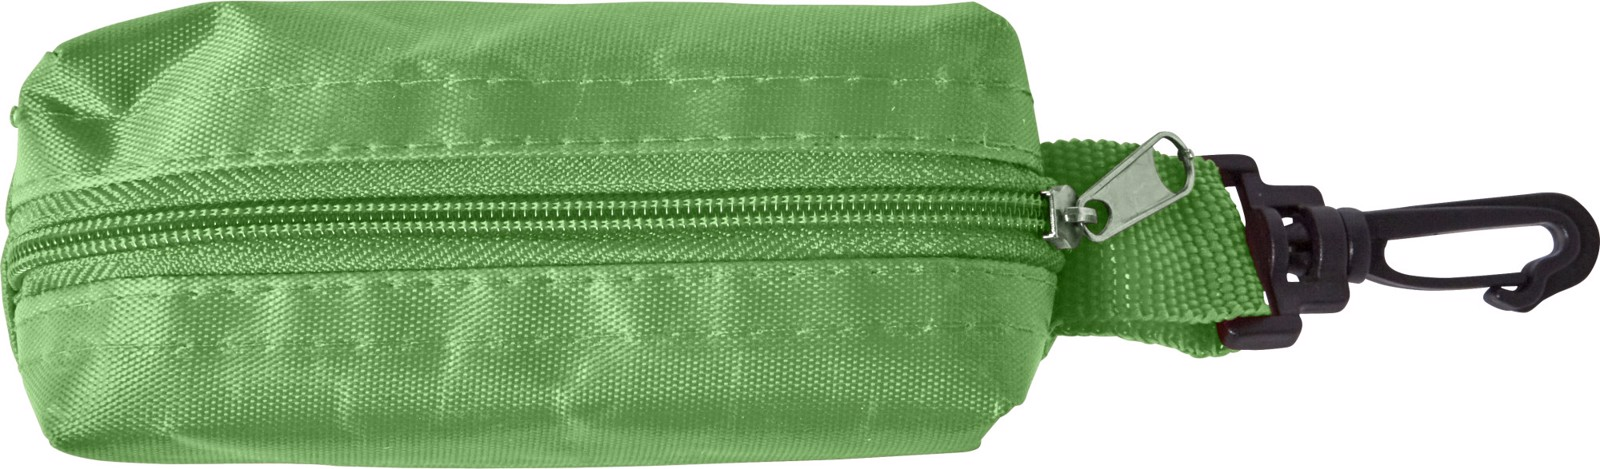 Polyester pouch with pencils - Green